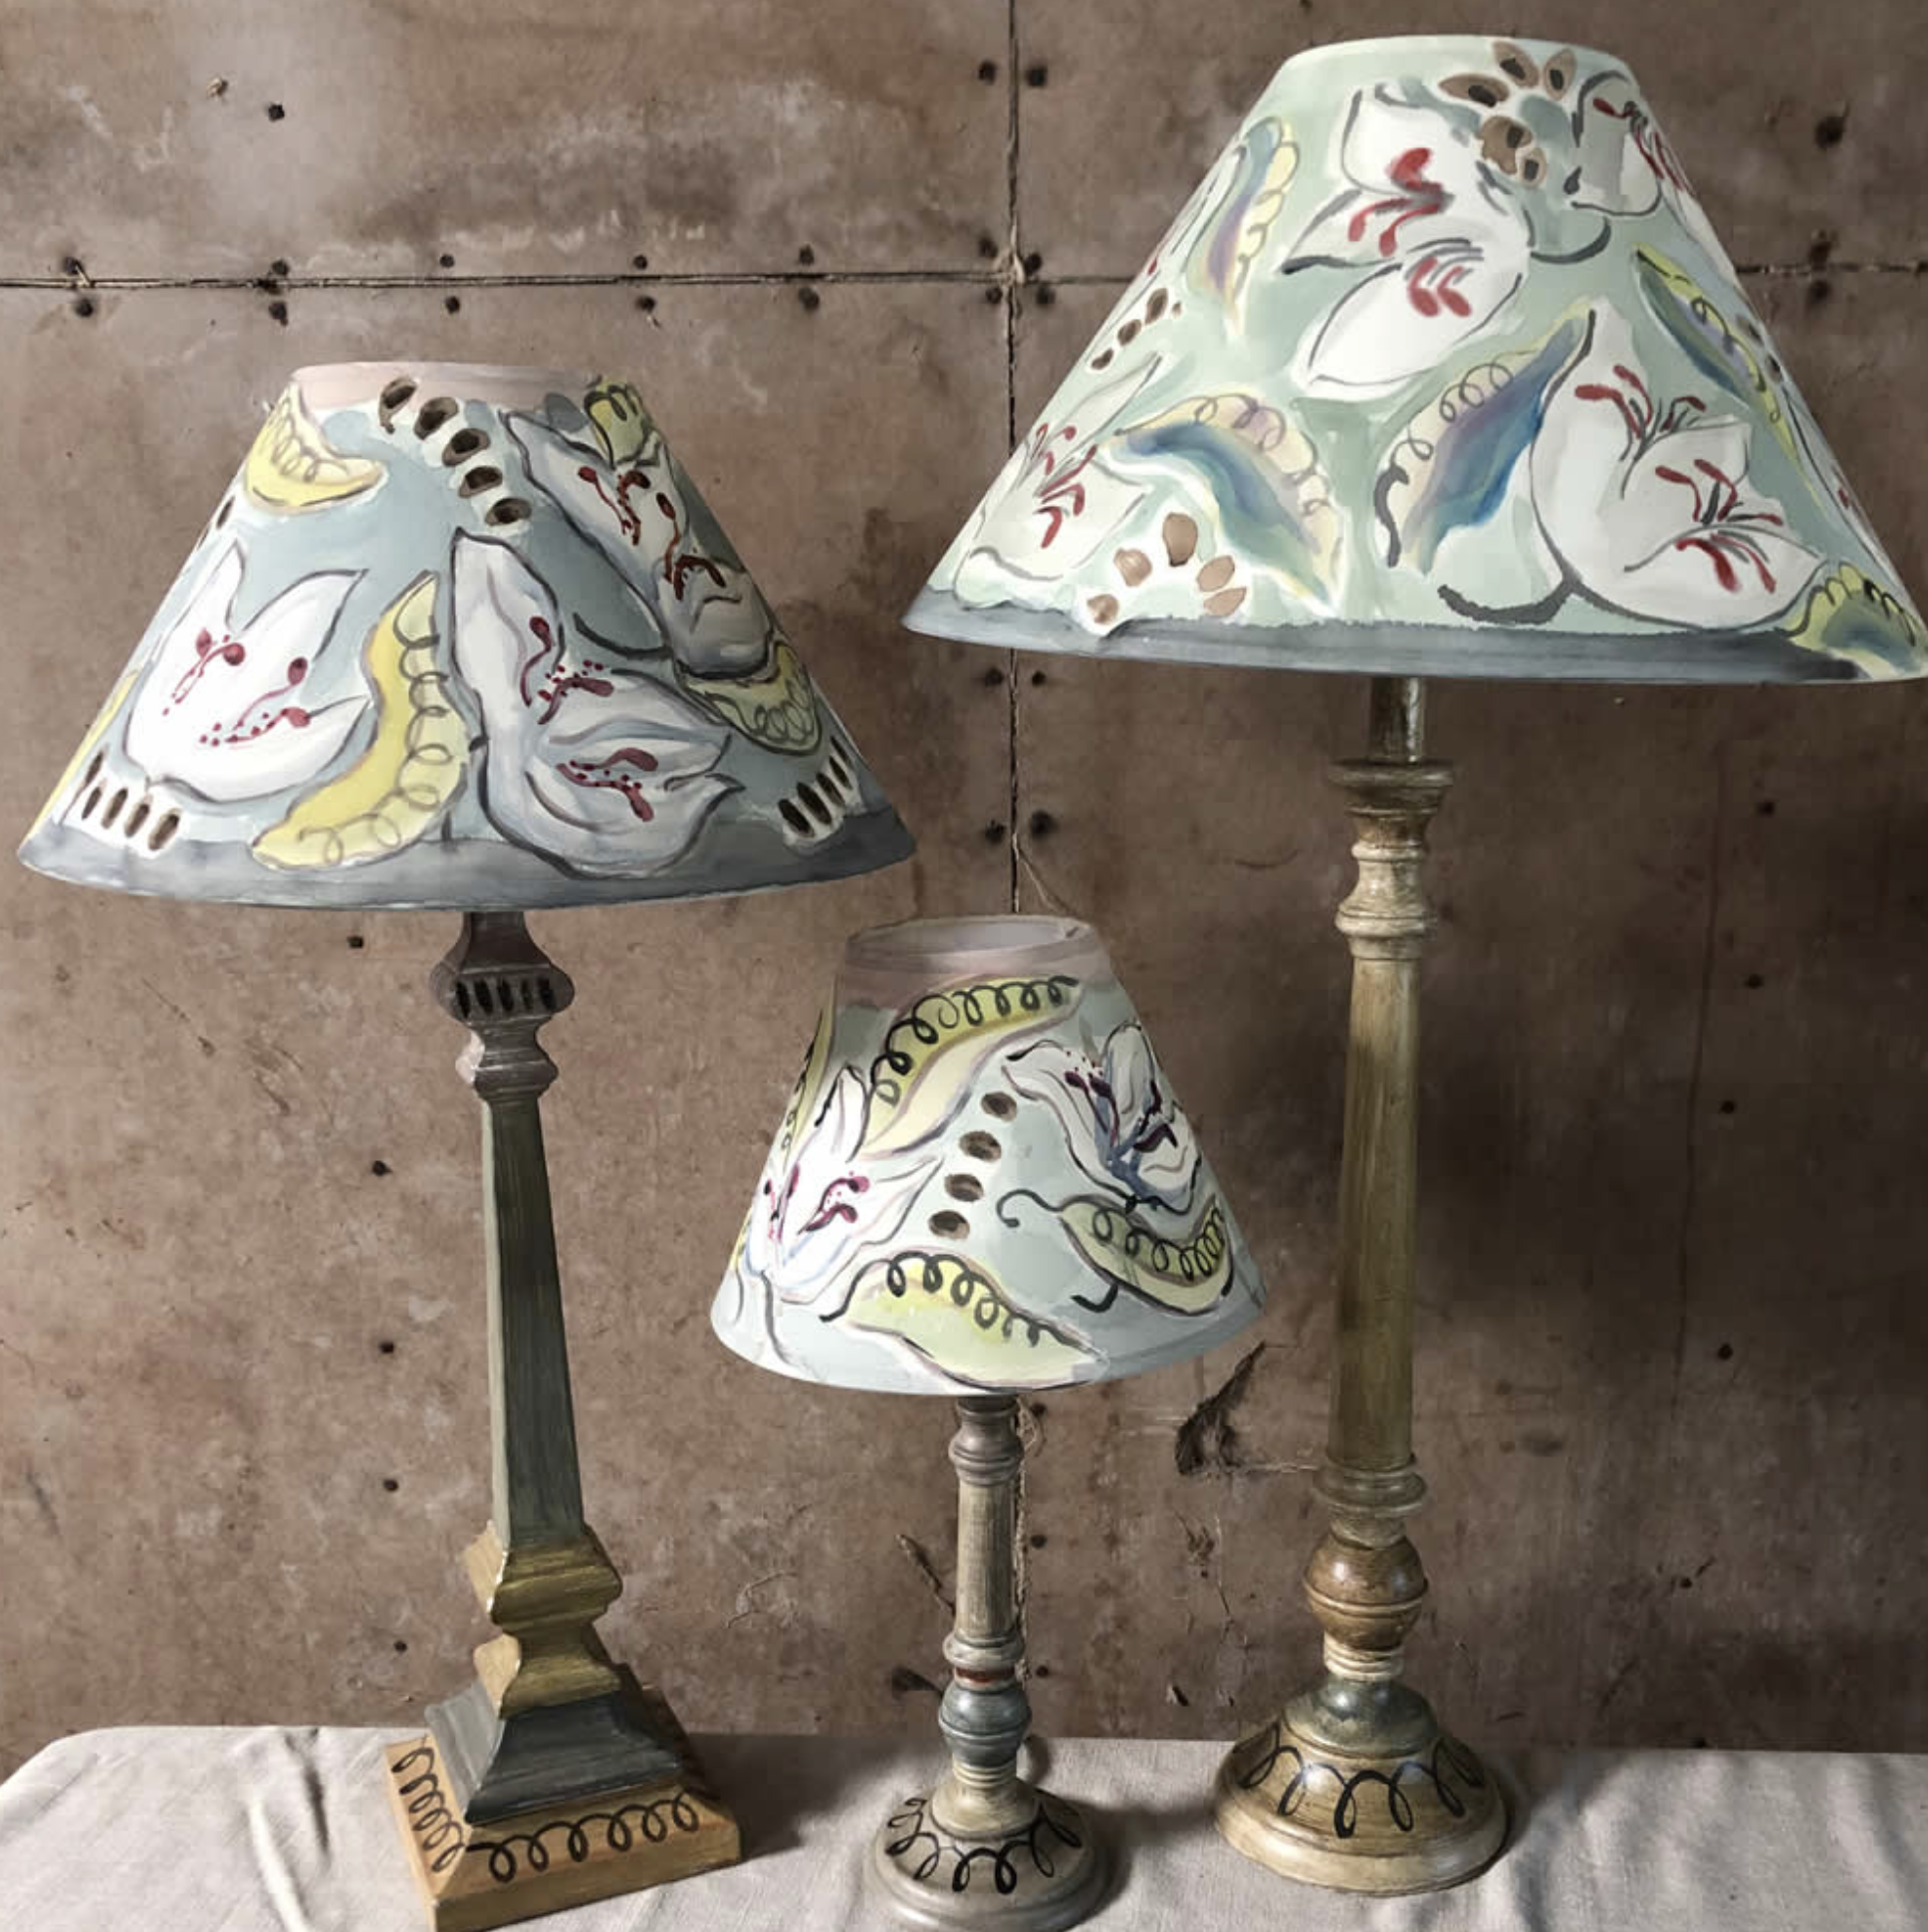 Bloomsbury Revisited lampshades